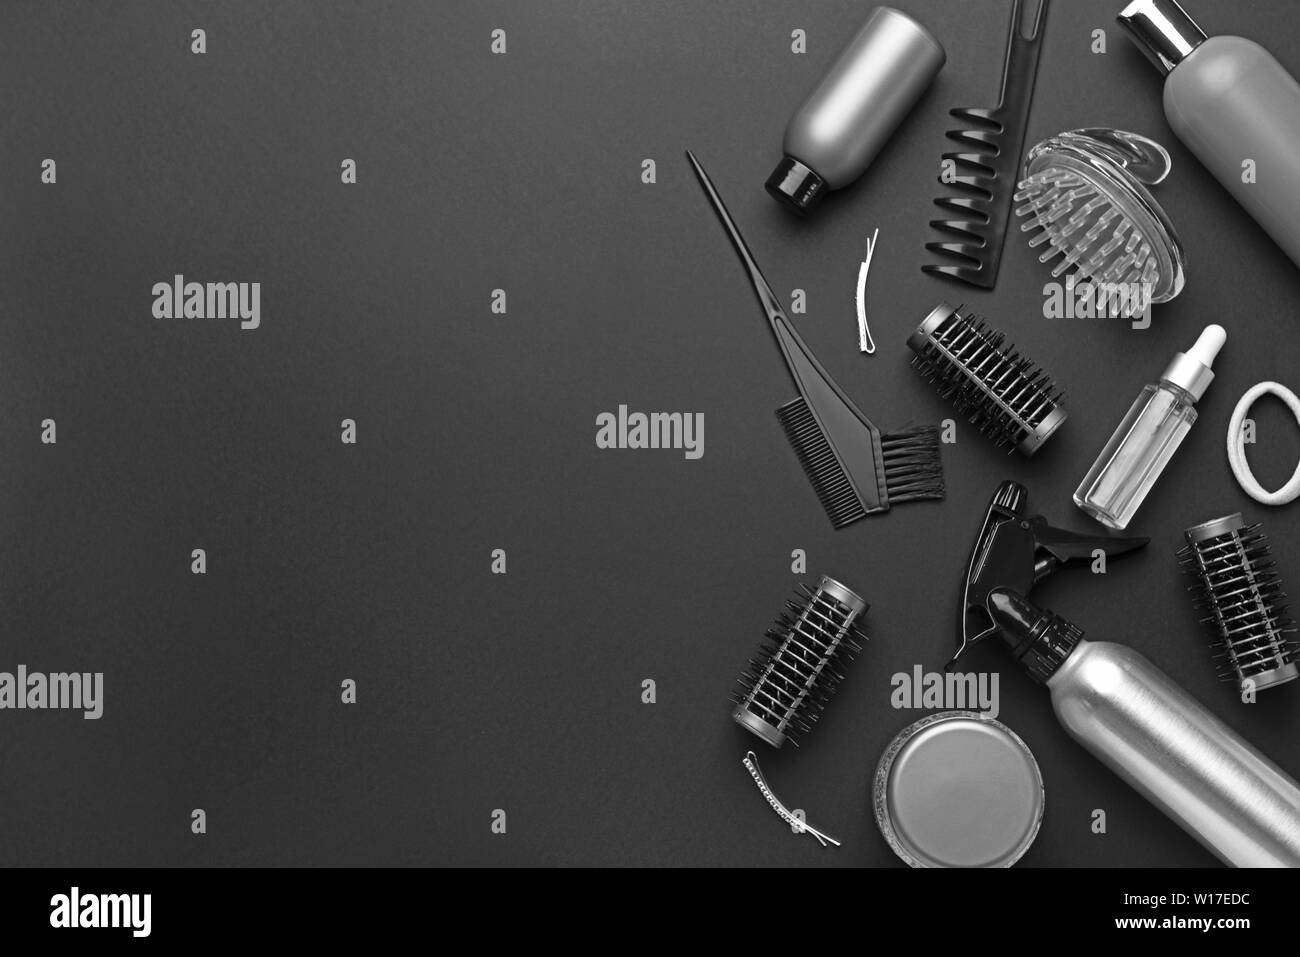 Set of hairdresser tools and accessories on dark background Stock Photo